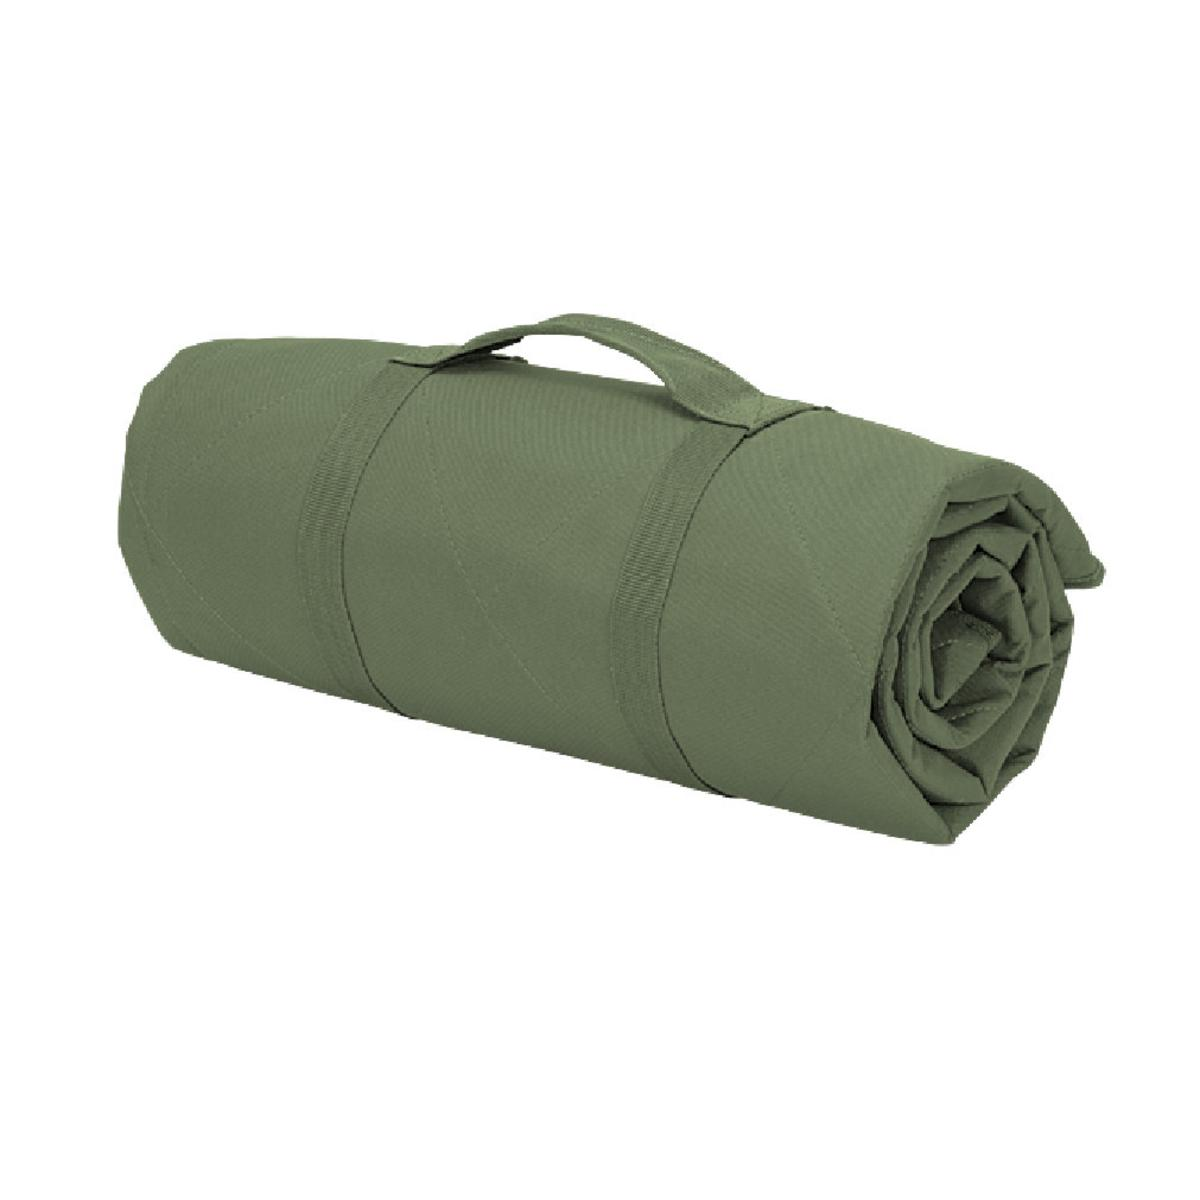 Voodoo Tactical Lightweight Roll Up Shooting Mat Ebay